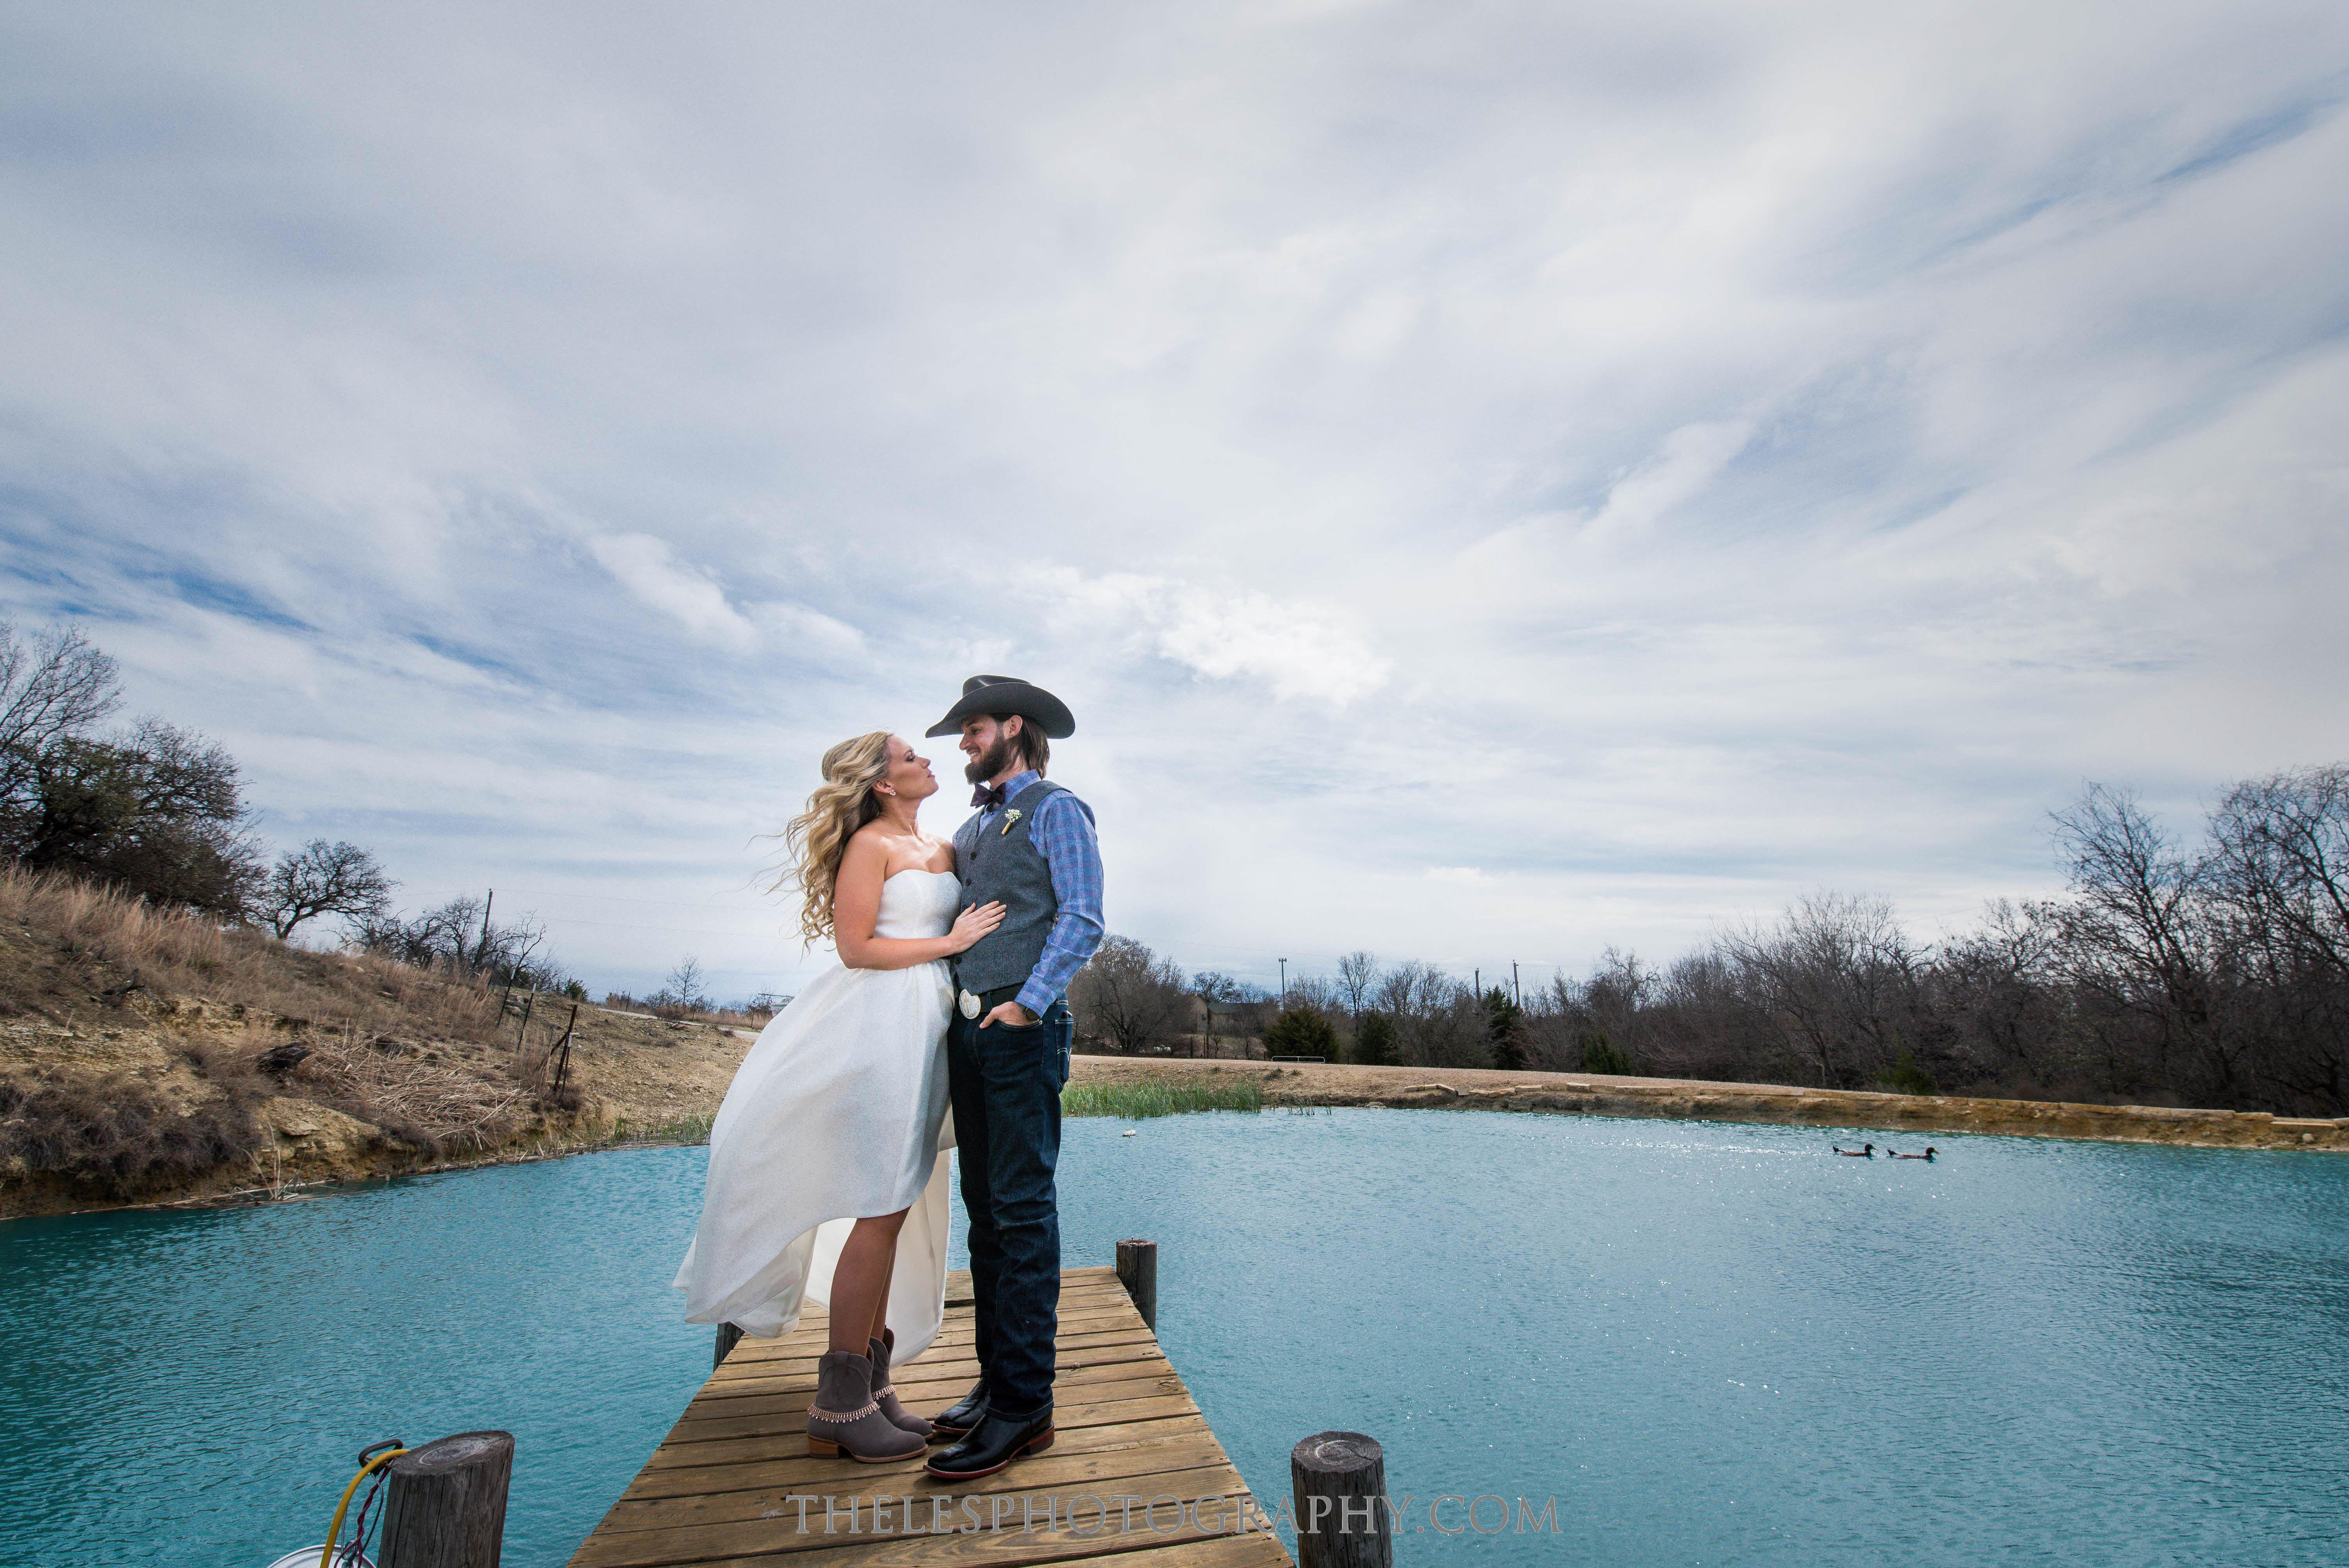 039 Dallas Wedding Photography - Photographer - The Les Photography - Fort Country Memories Wedding